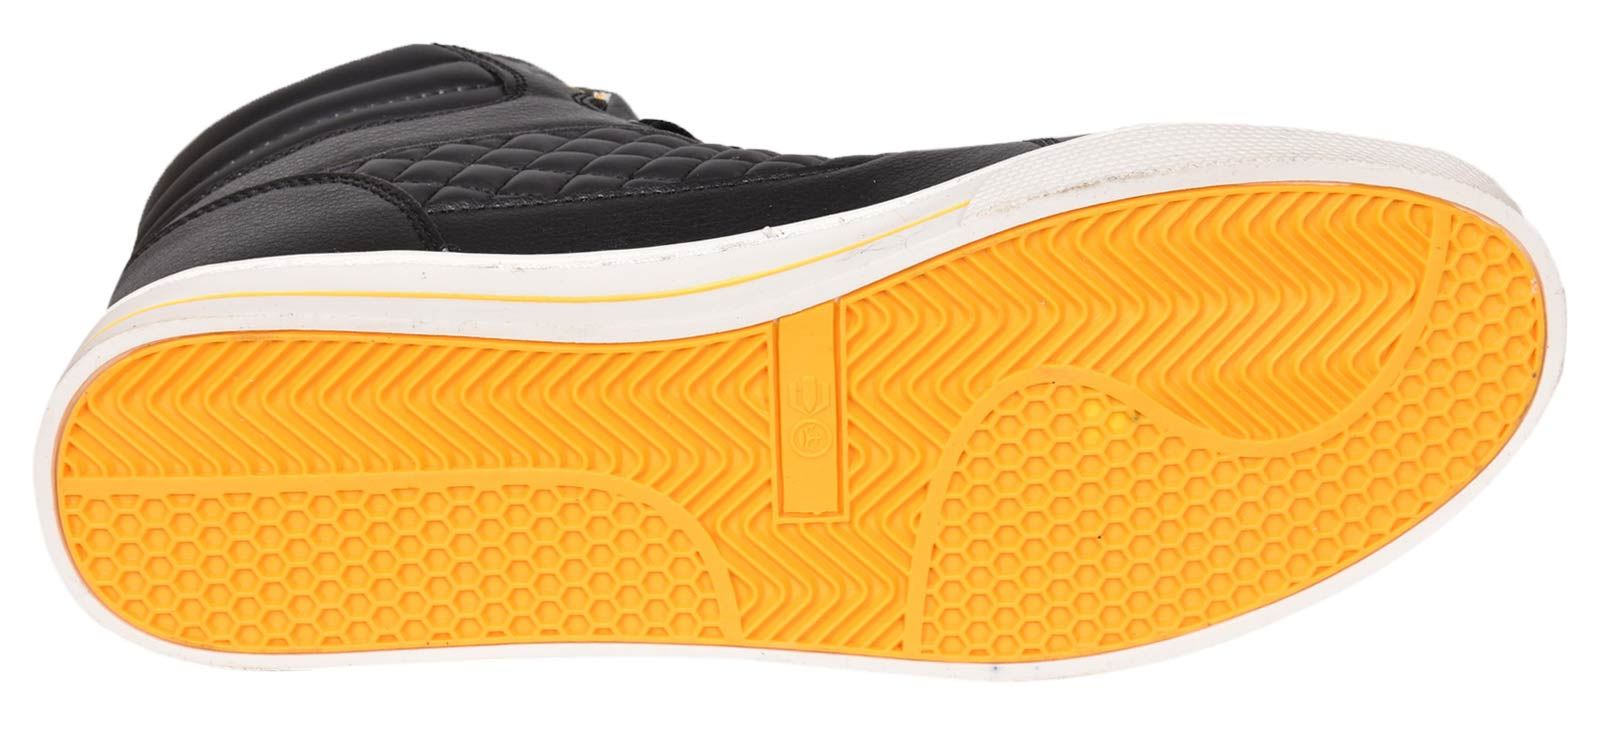 Mens-Trainers-Lace-up-Crosshatch-High-Tops-Ankle-Padded-Shoes-New-UK-Sizes-7-12 thumbnail 7